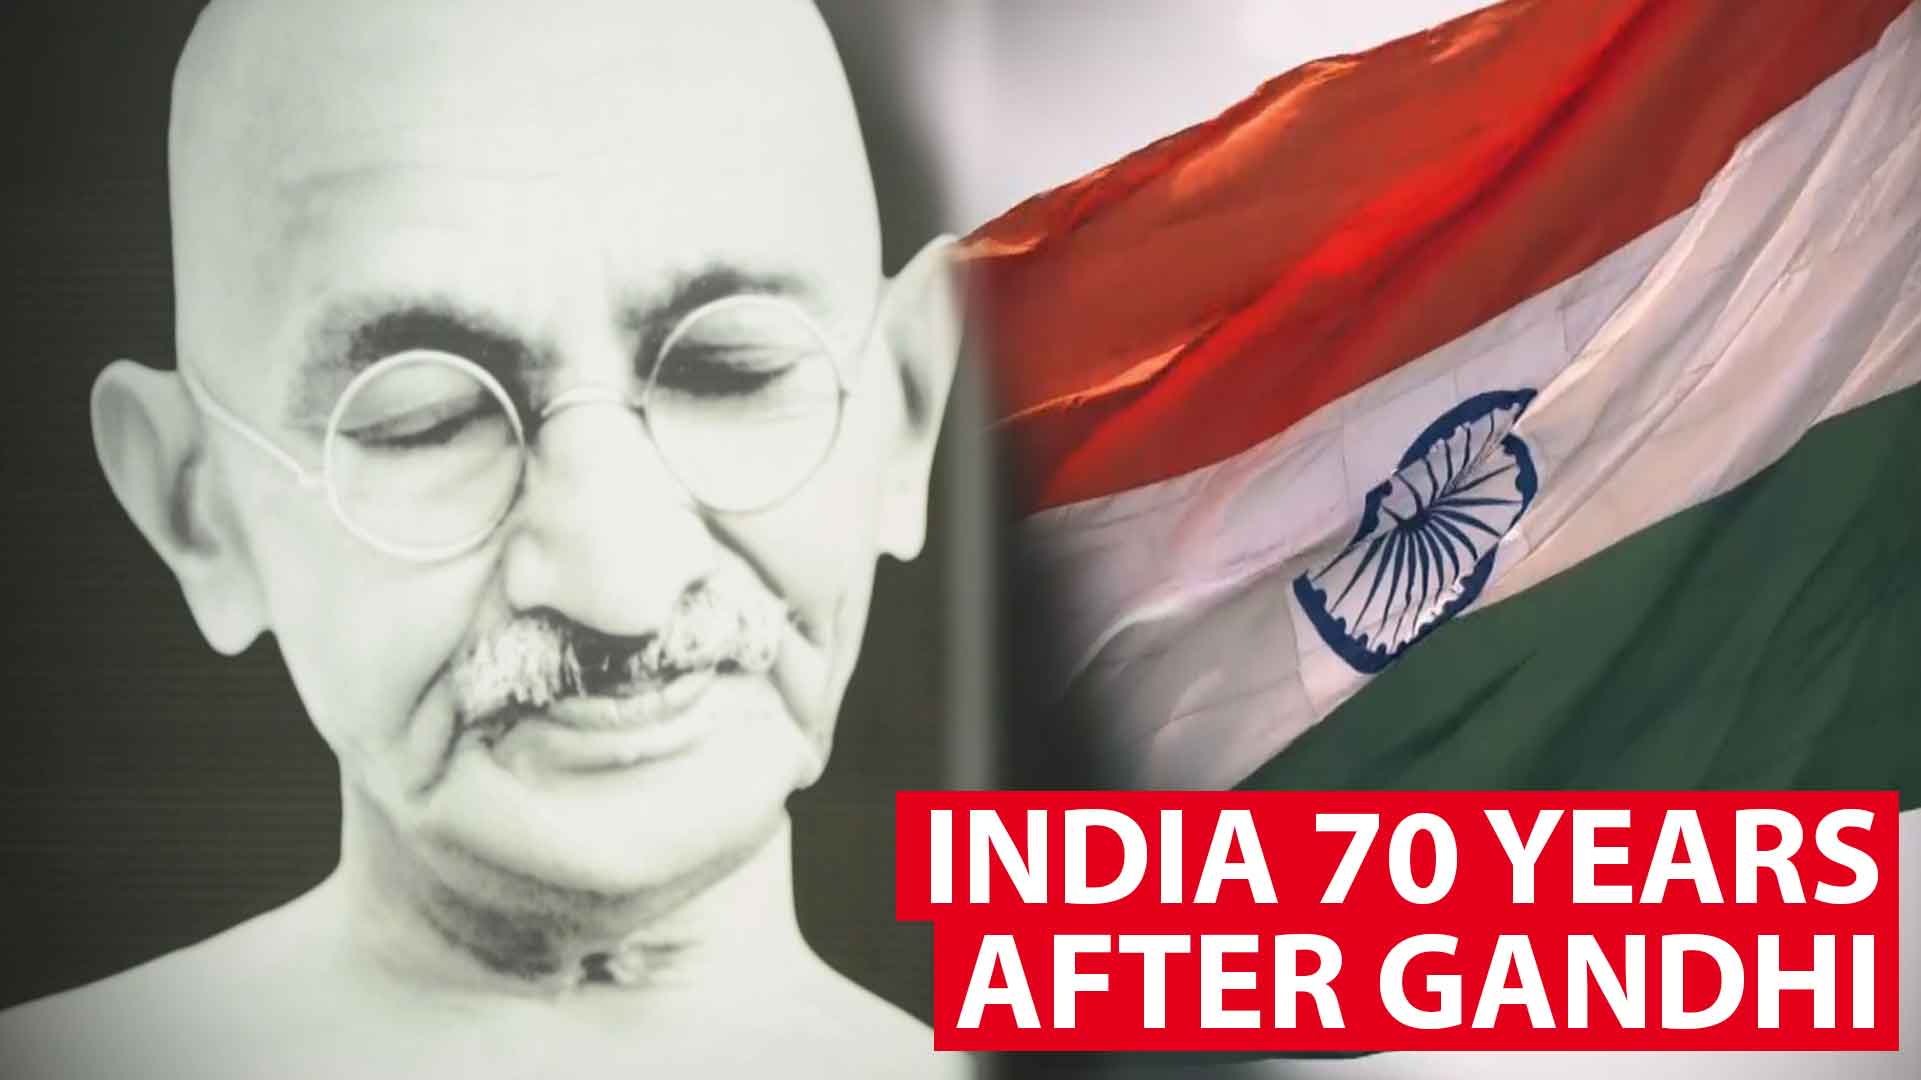 India 70 years after Gandhi: A legacy broken?